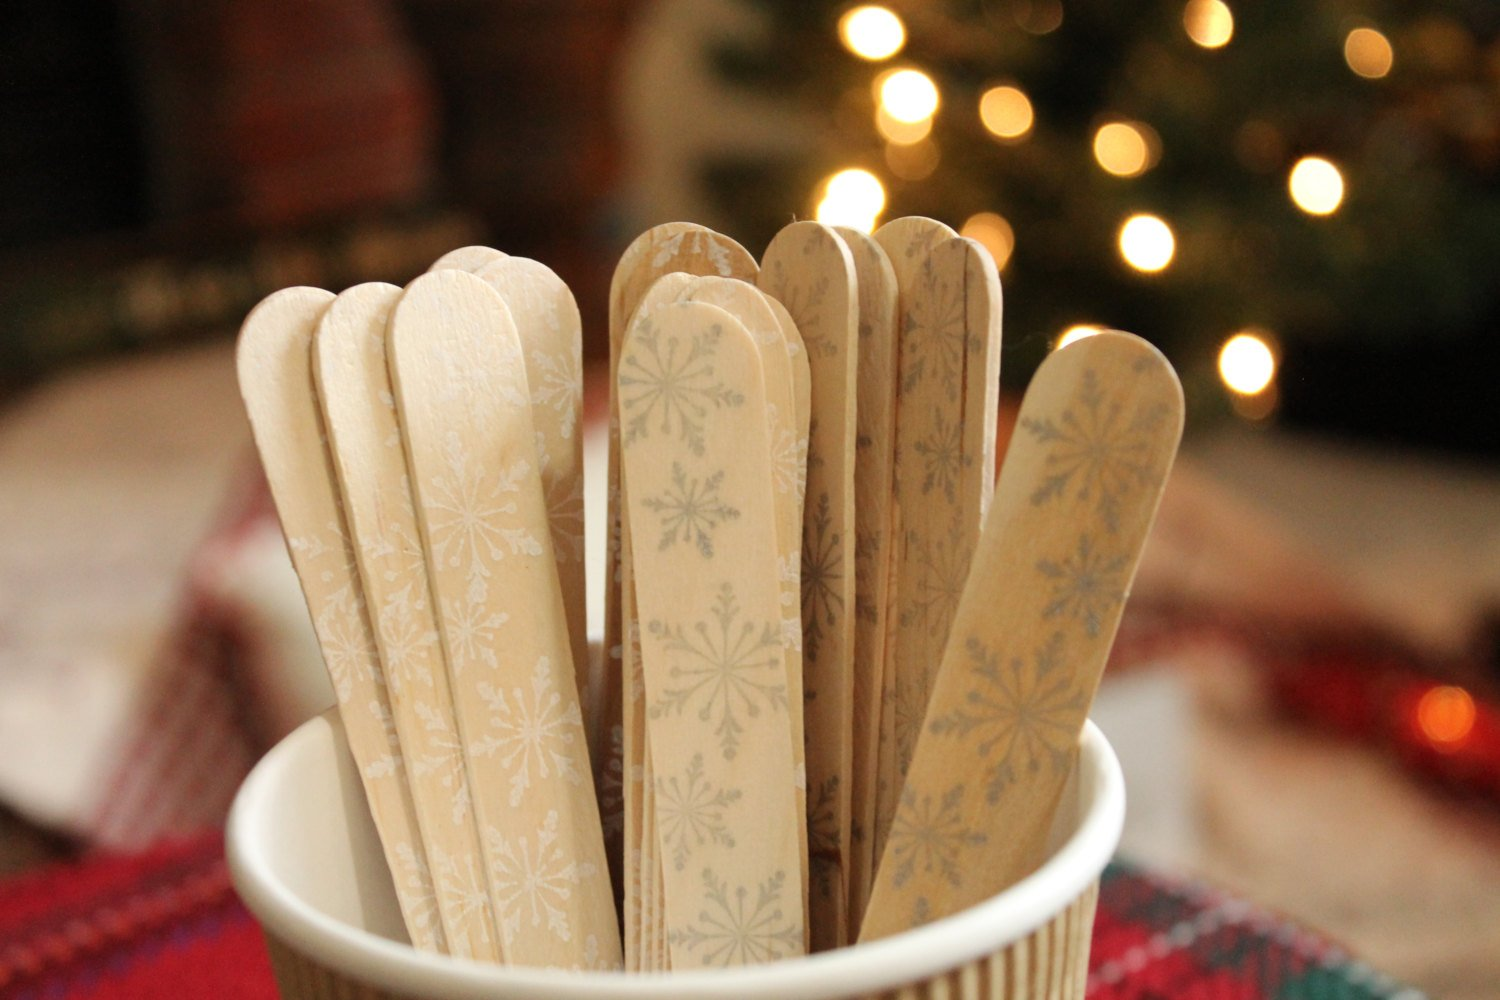 Snowflake Wooden Cutlery